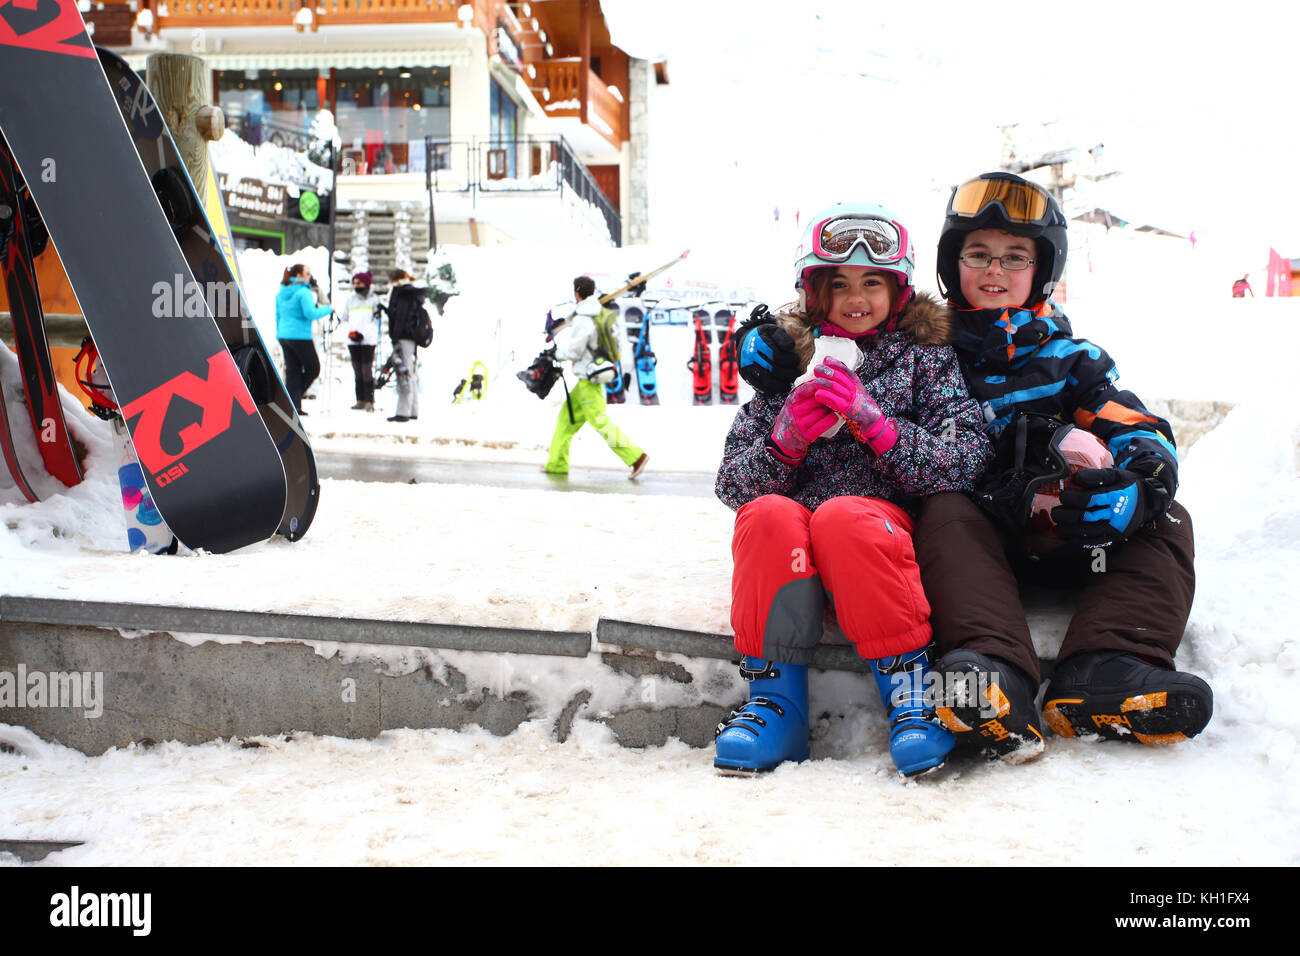 kids in the snow wearing ski suits, helmets and goggles - Stock Image